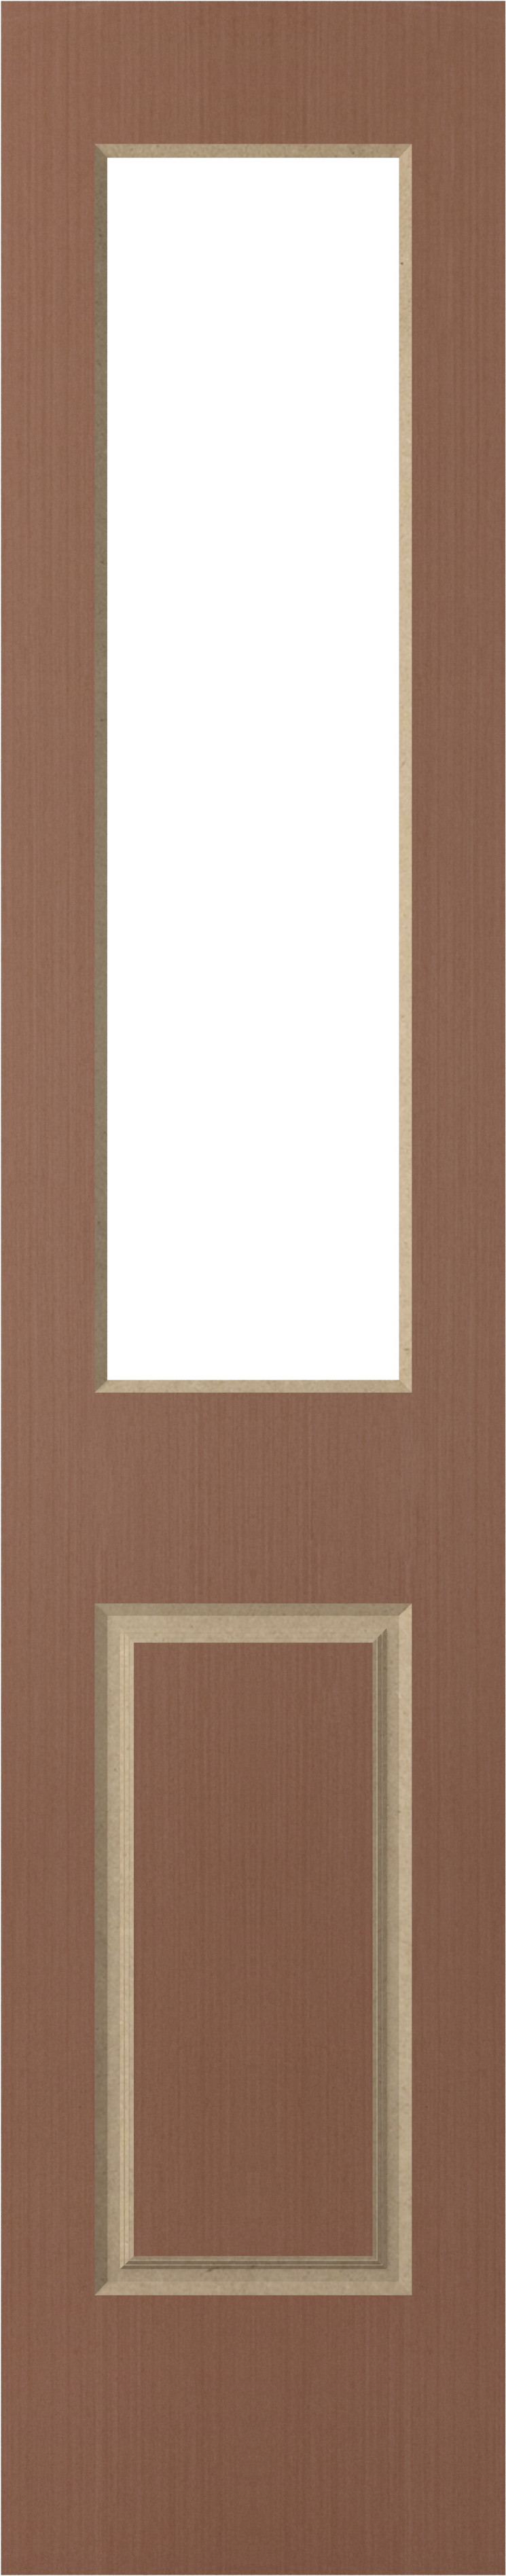 Corinthian Solidcarve Vertical Grain Rosewood Sidelight Featuring 1 Panels/1 Light Panel